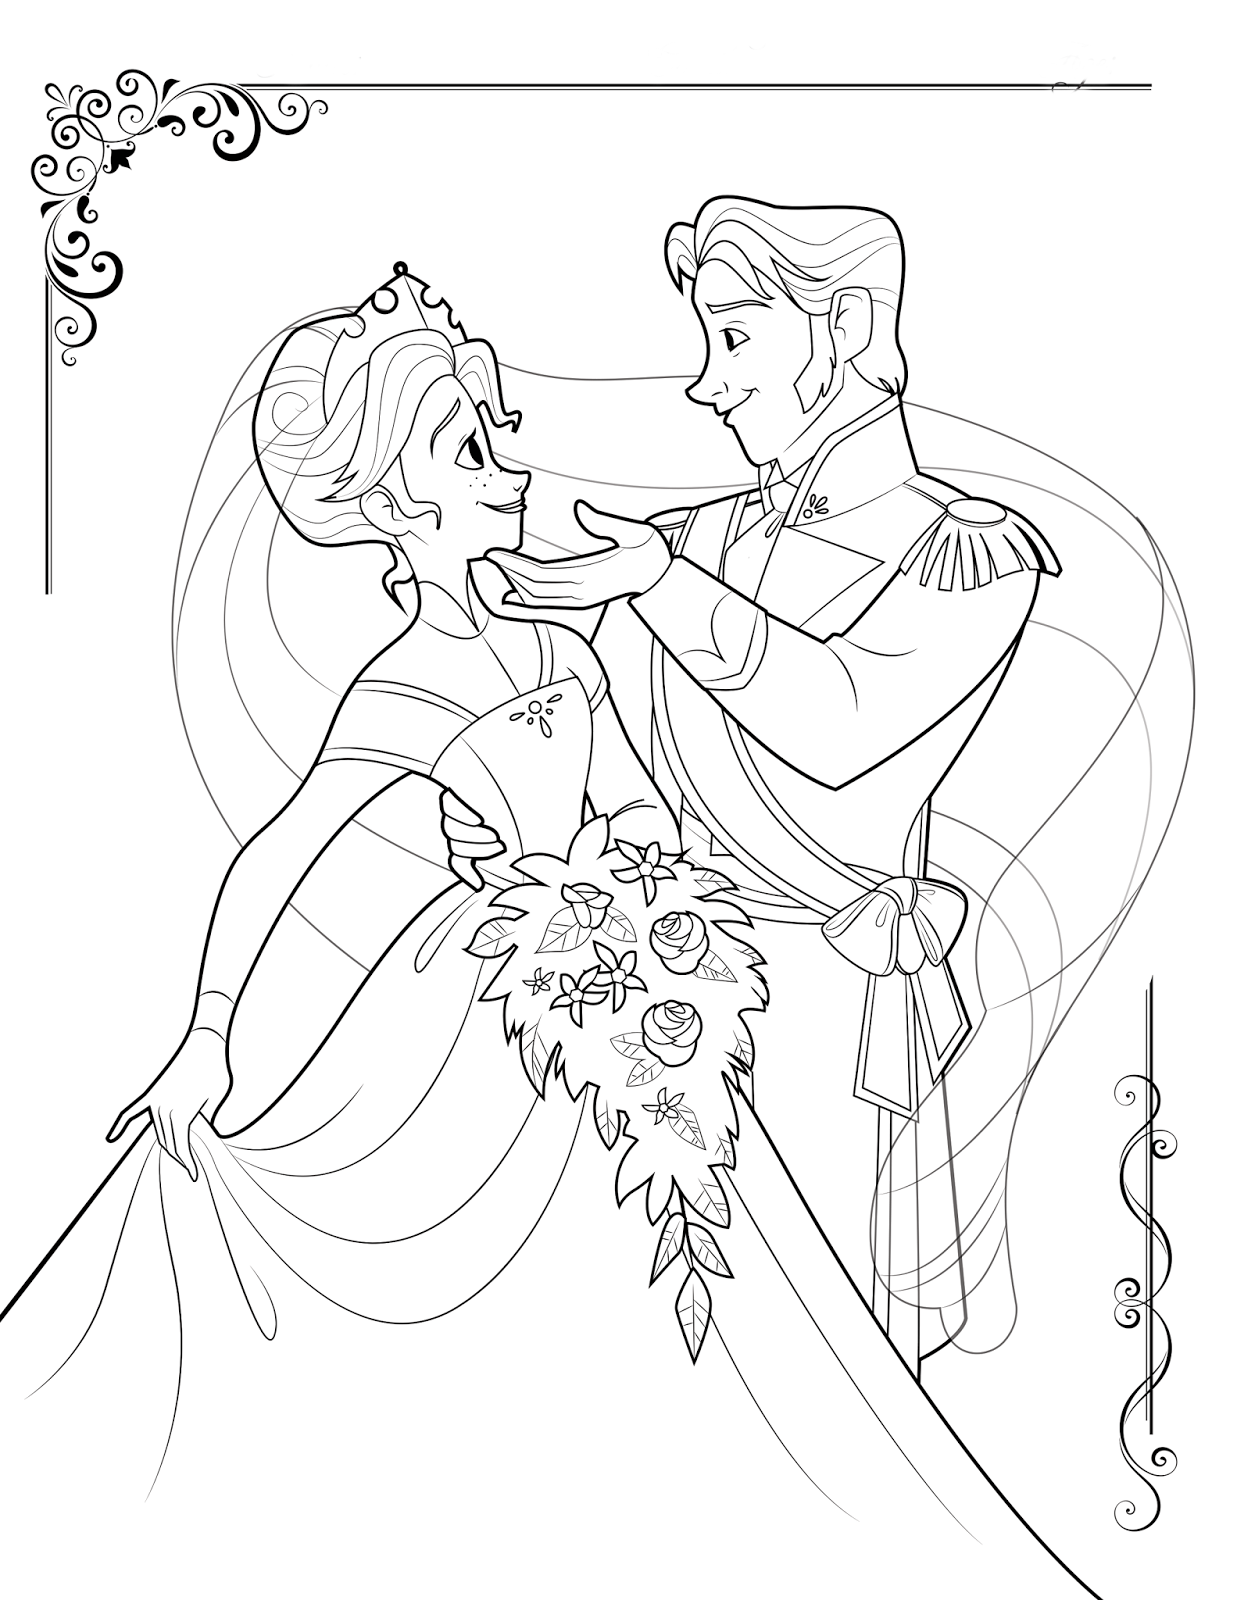 coloring pages printable frozen 12 free printable disney frozen coloring pages anna coloring printable frozen pages